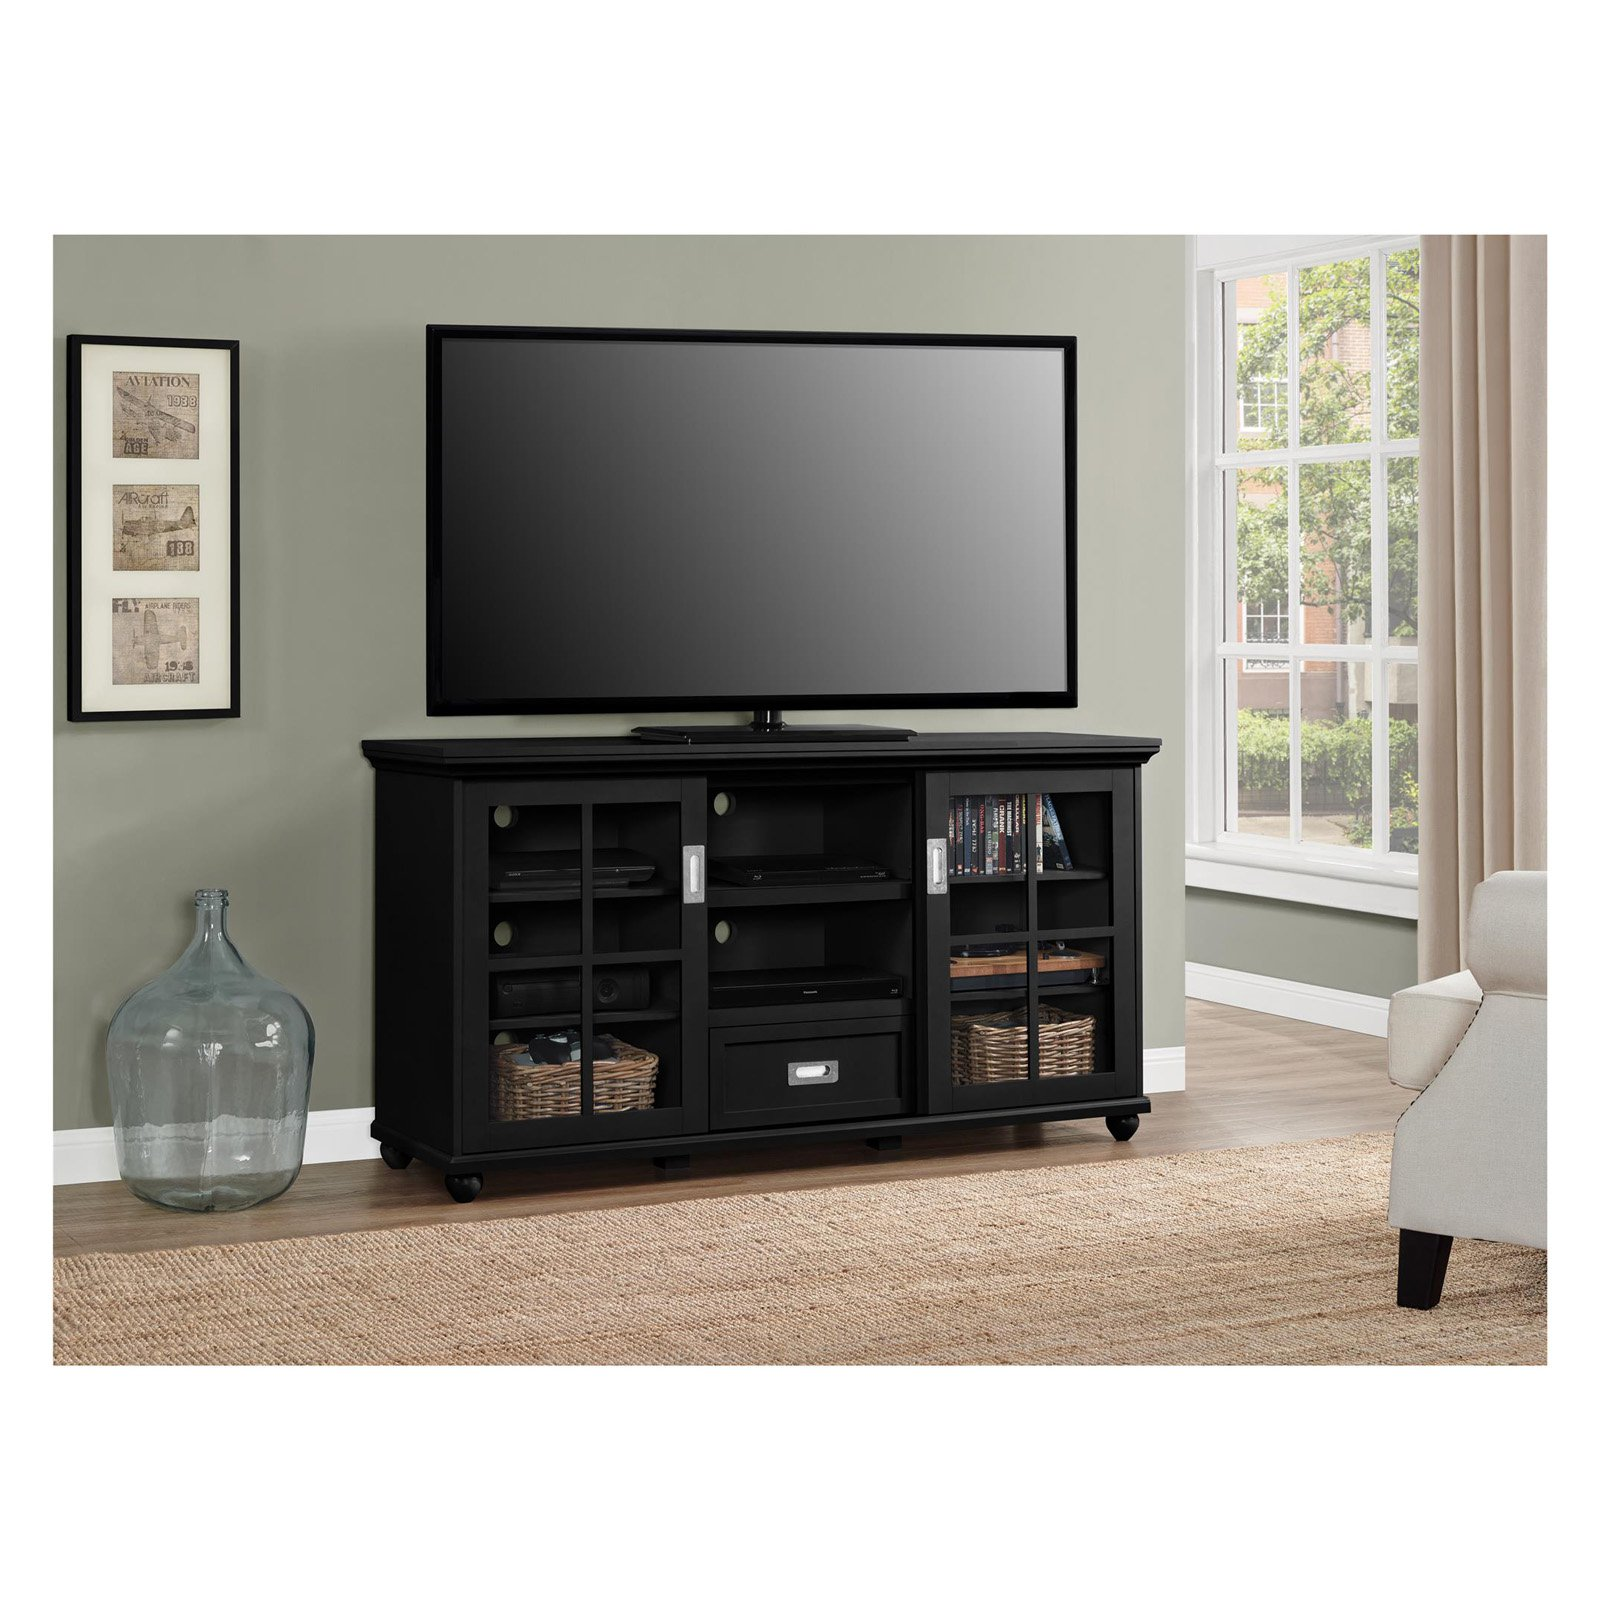 "Ameriwood Home Aaron Lane 55"" TV Stand, Black"